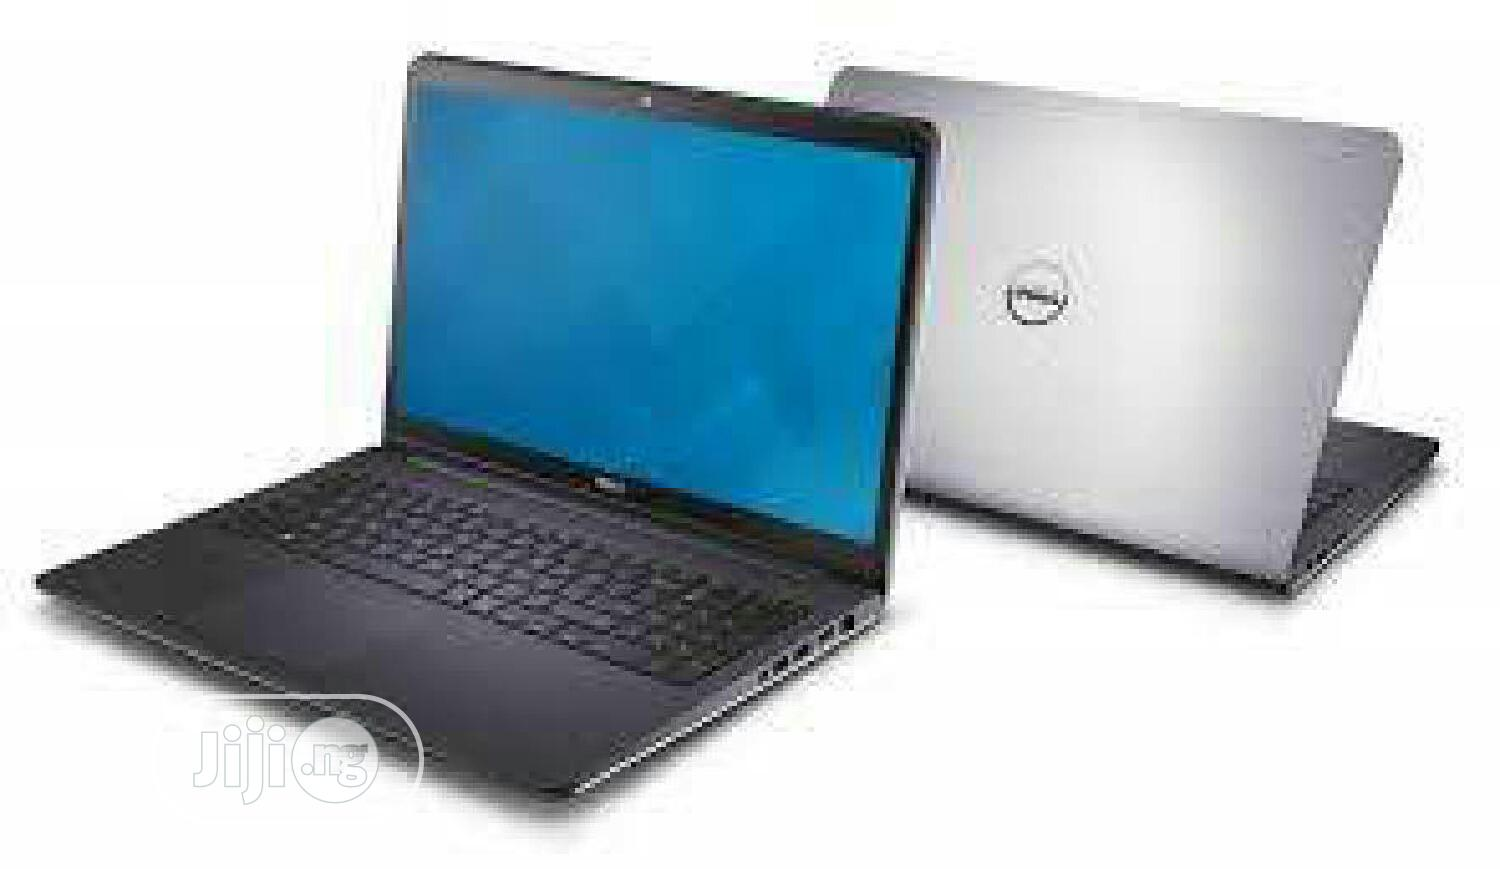 Laptop Dell Inspiron 15 1545 8GB Intel Celeron HDD 1T | Laptops & Computers for sale in Ikeja, Lagos State, Nigeria